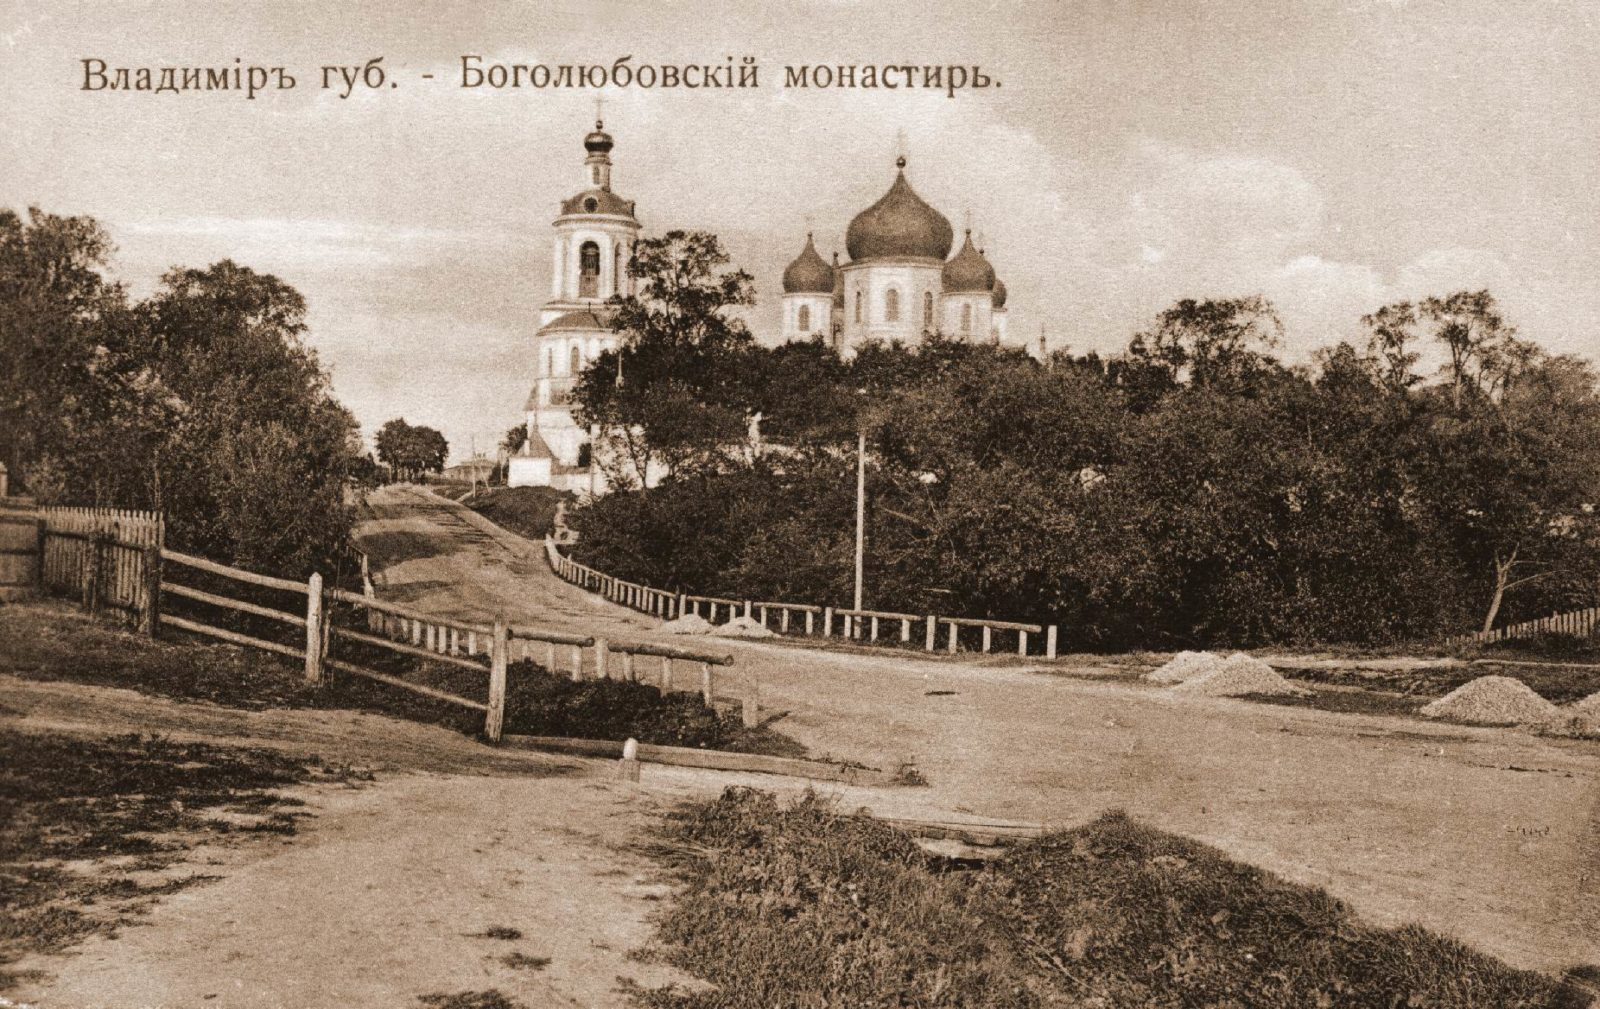 Vladimir Gubernia - Bogolyubsky Monastery of the Nativity of the Virgin